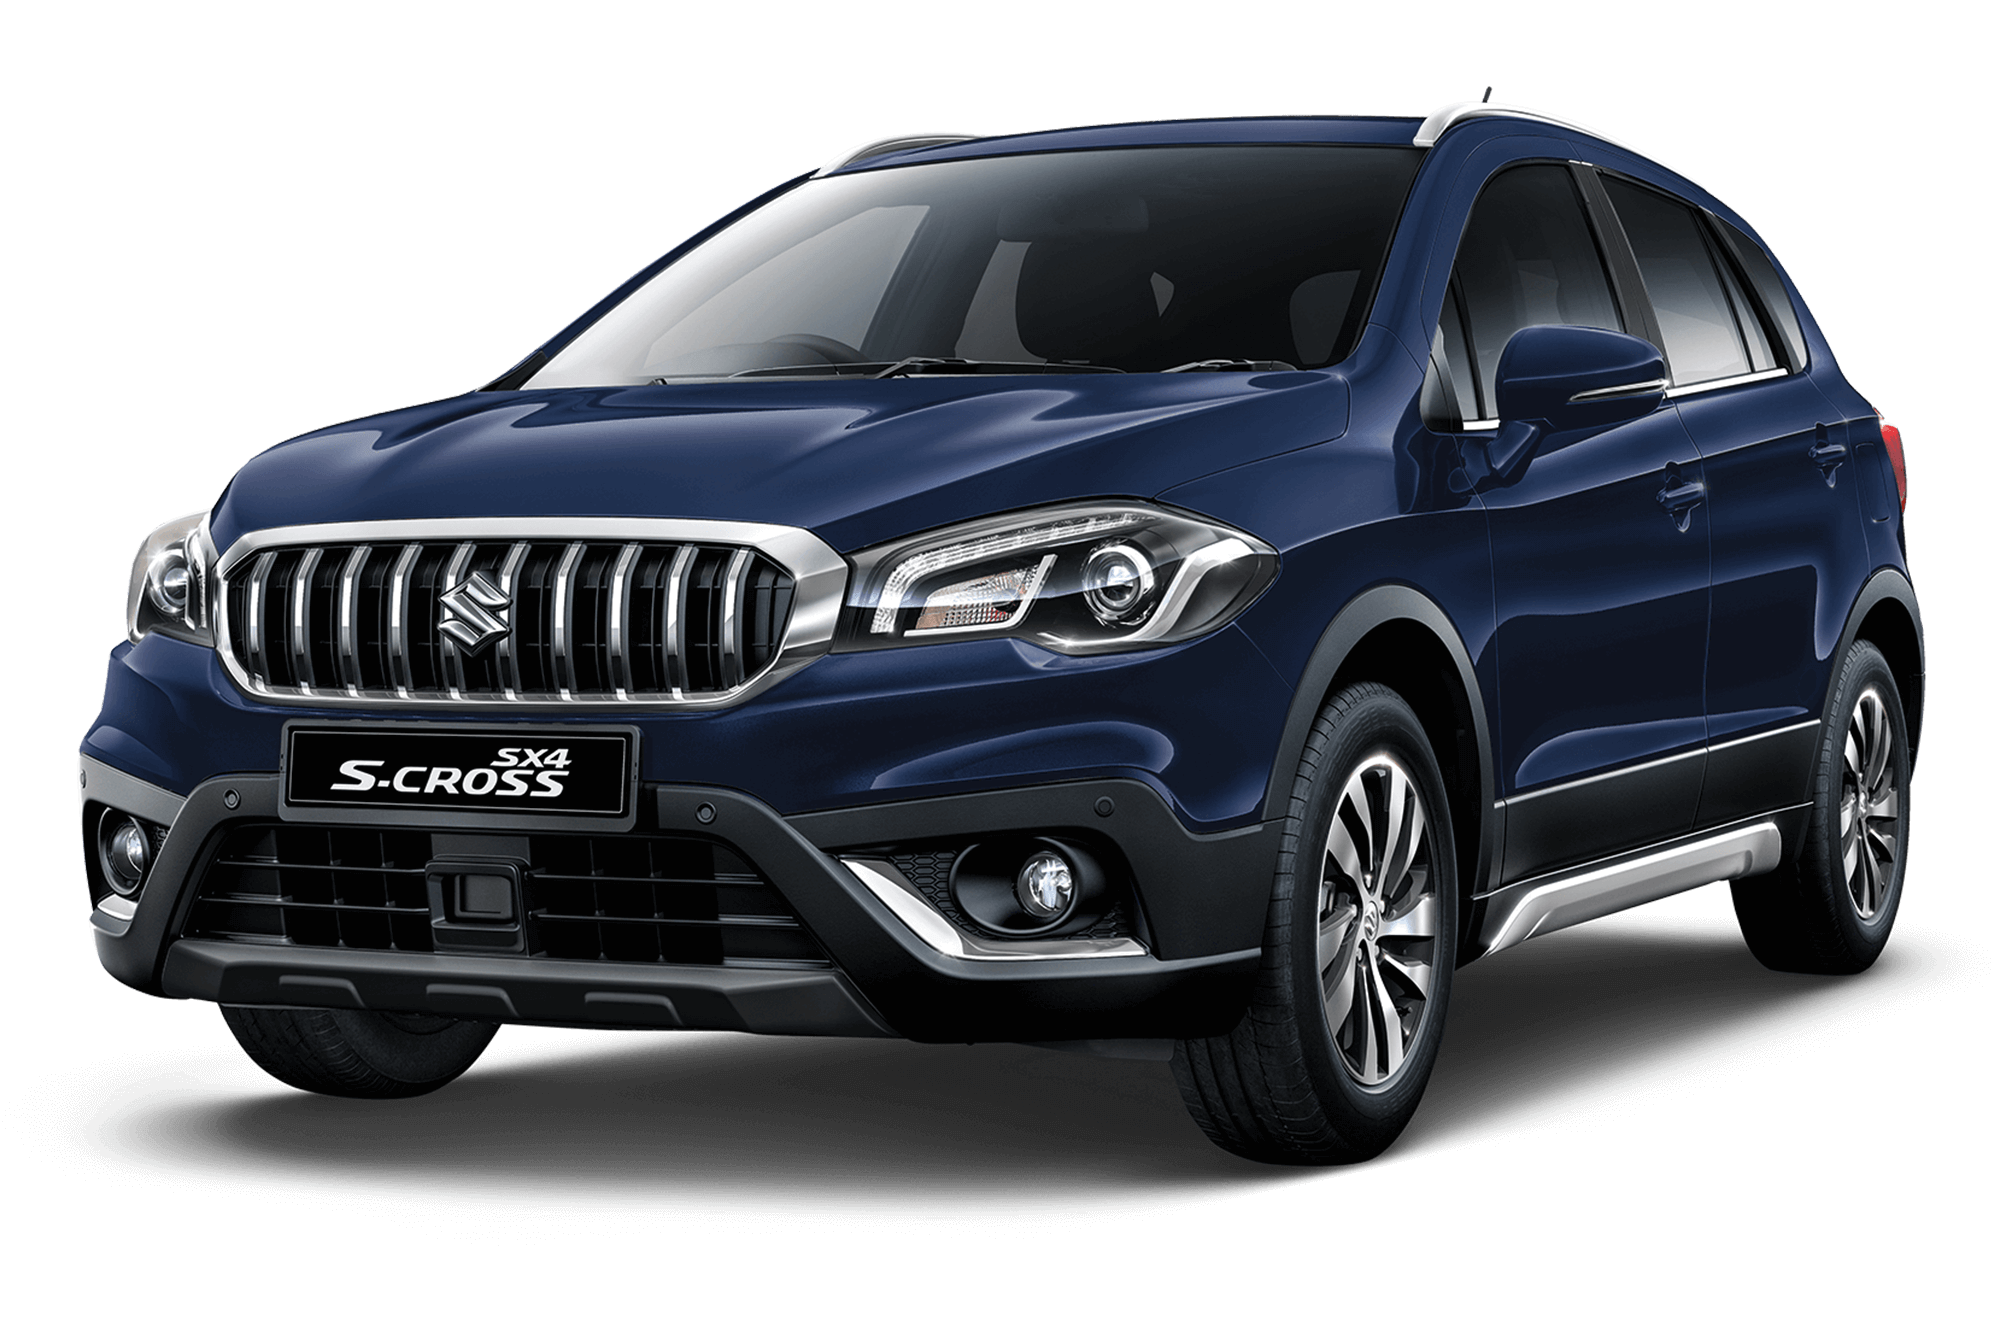 new suzuki sx4 s cross sz5 specs price suzuki cars uk. Black Bedroom Furniture Sets. Home Design Ideas